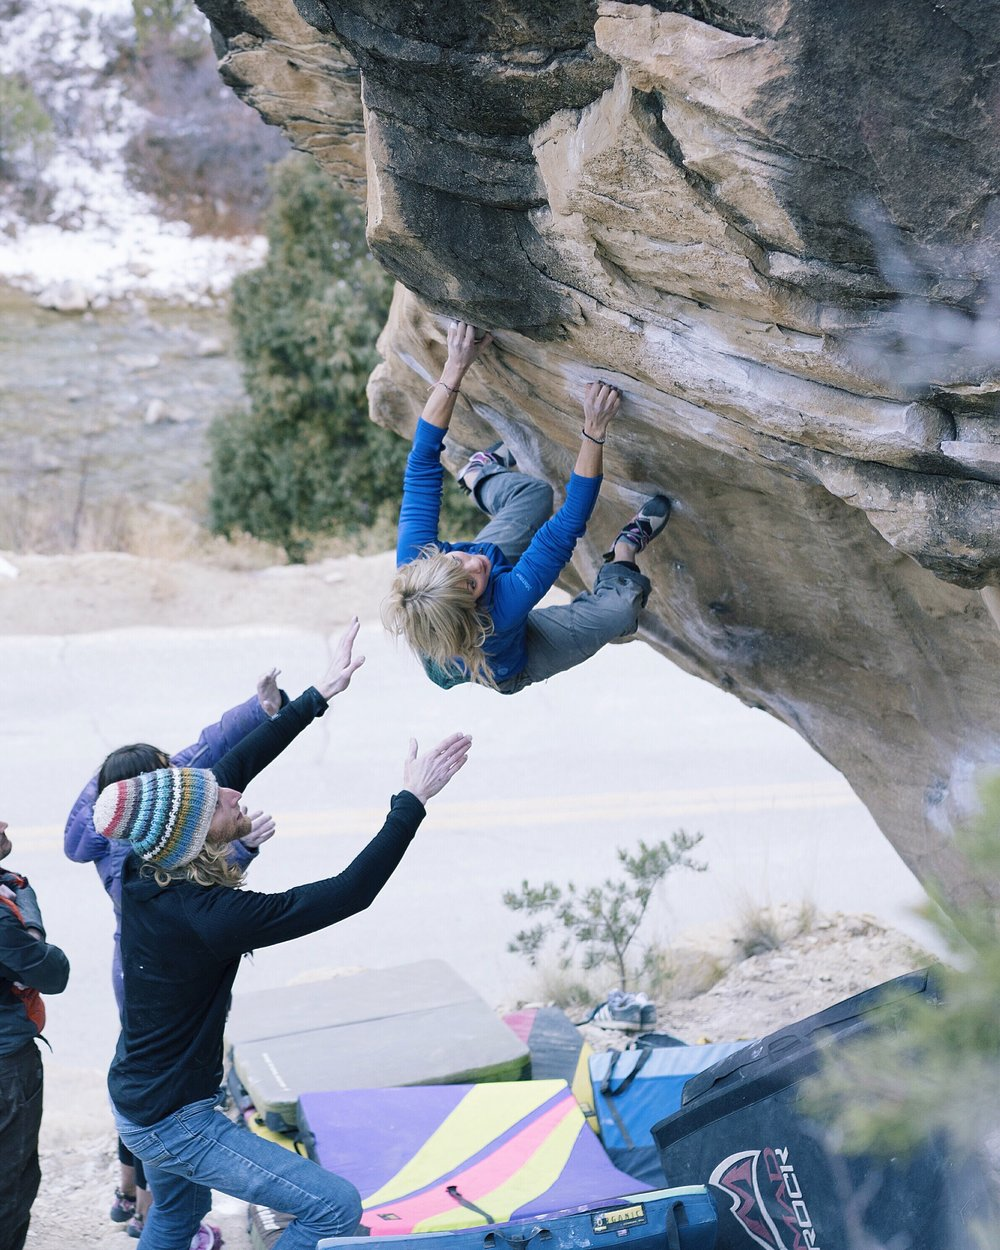 Worst Case Scenario, V9, Joe's Valley, Utah, USA